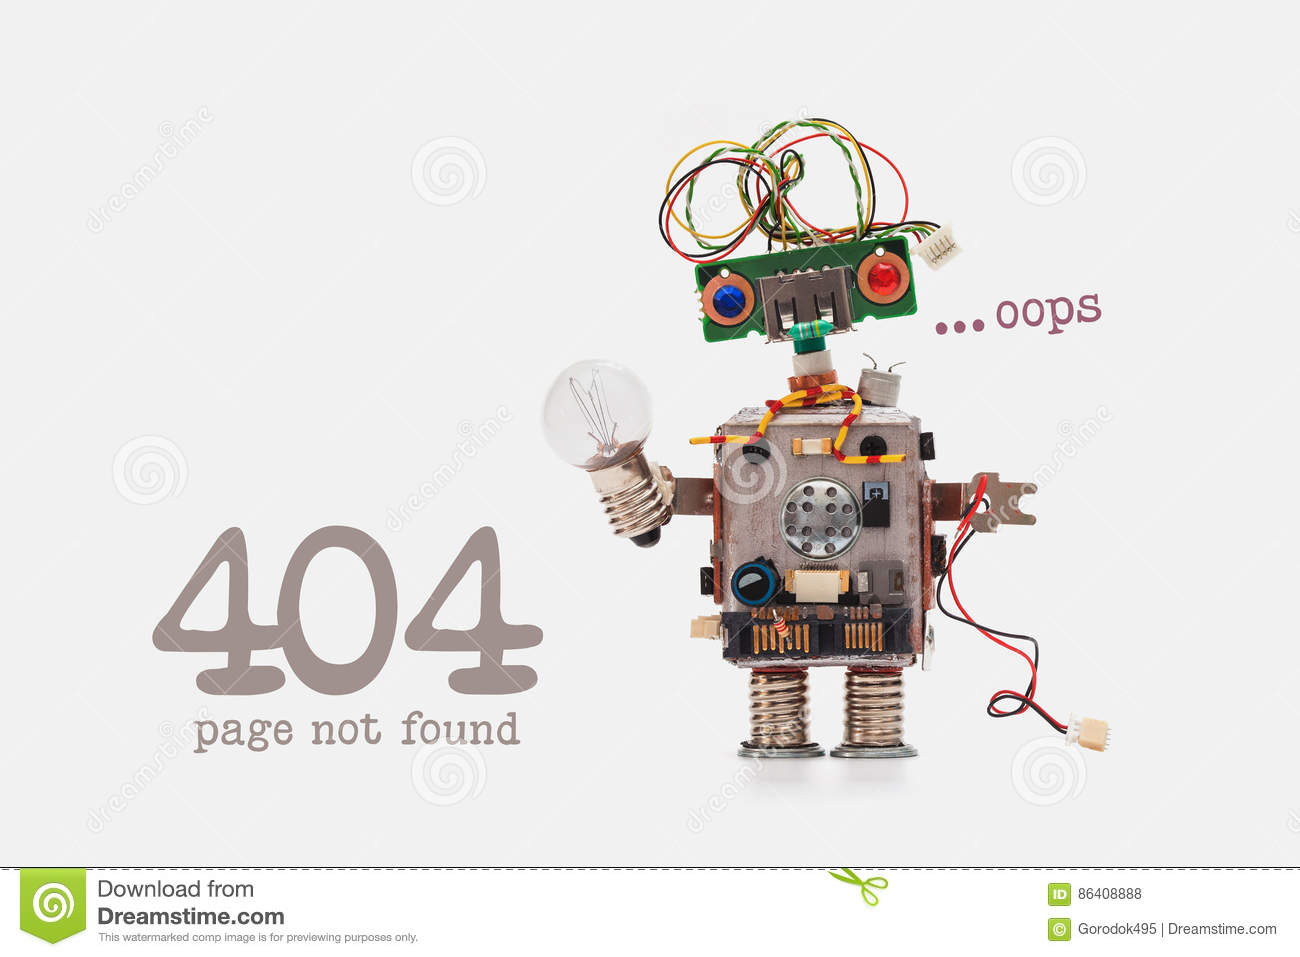 Oops 404 error page not found. Futuristic robot concept with electrical wire hairstyle. Circuits socket chip toy